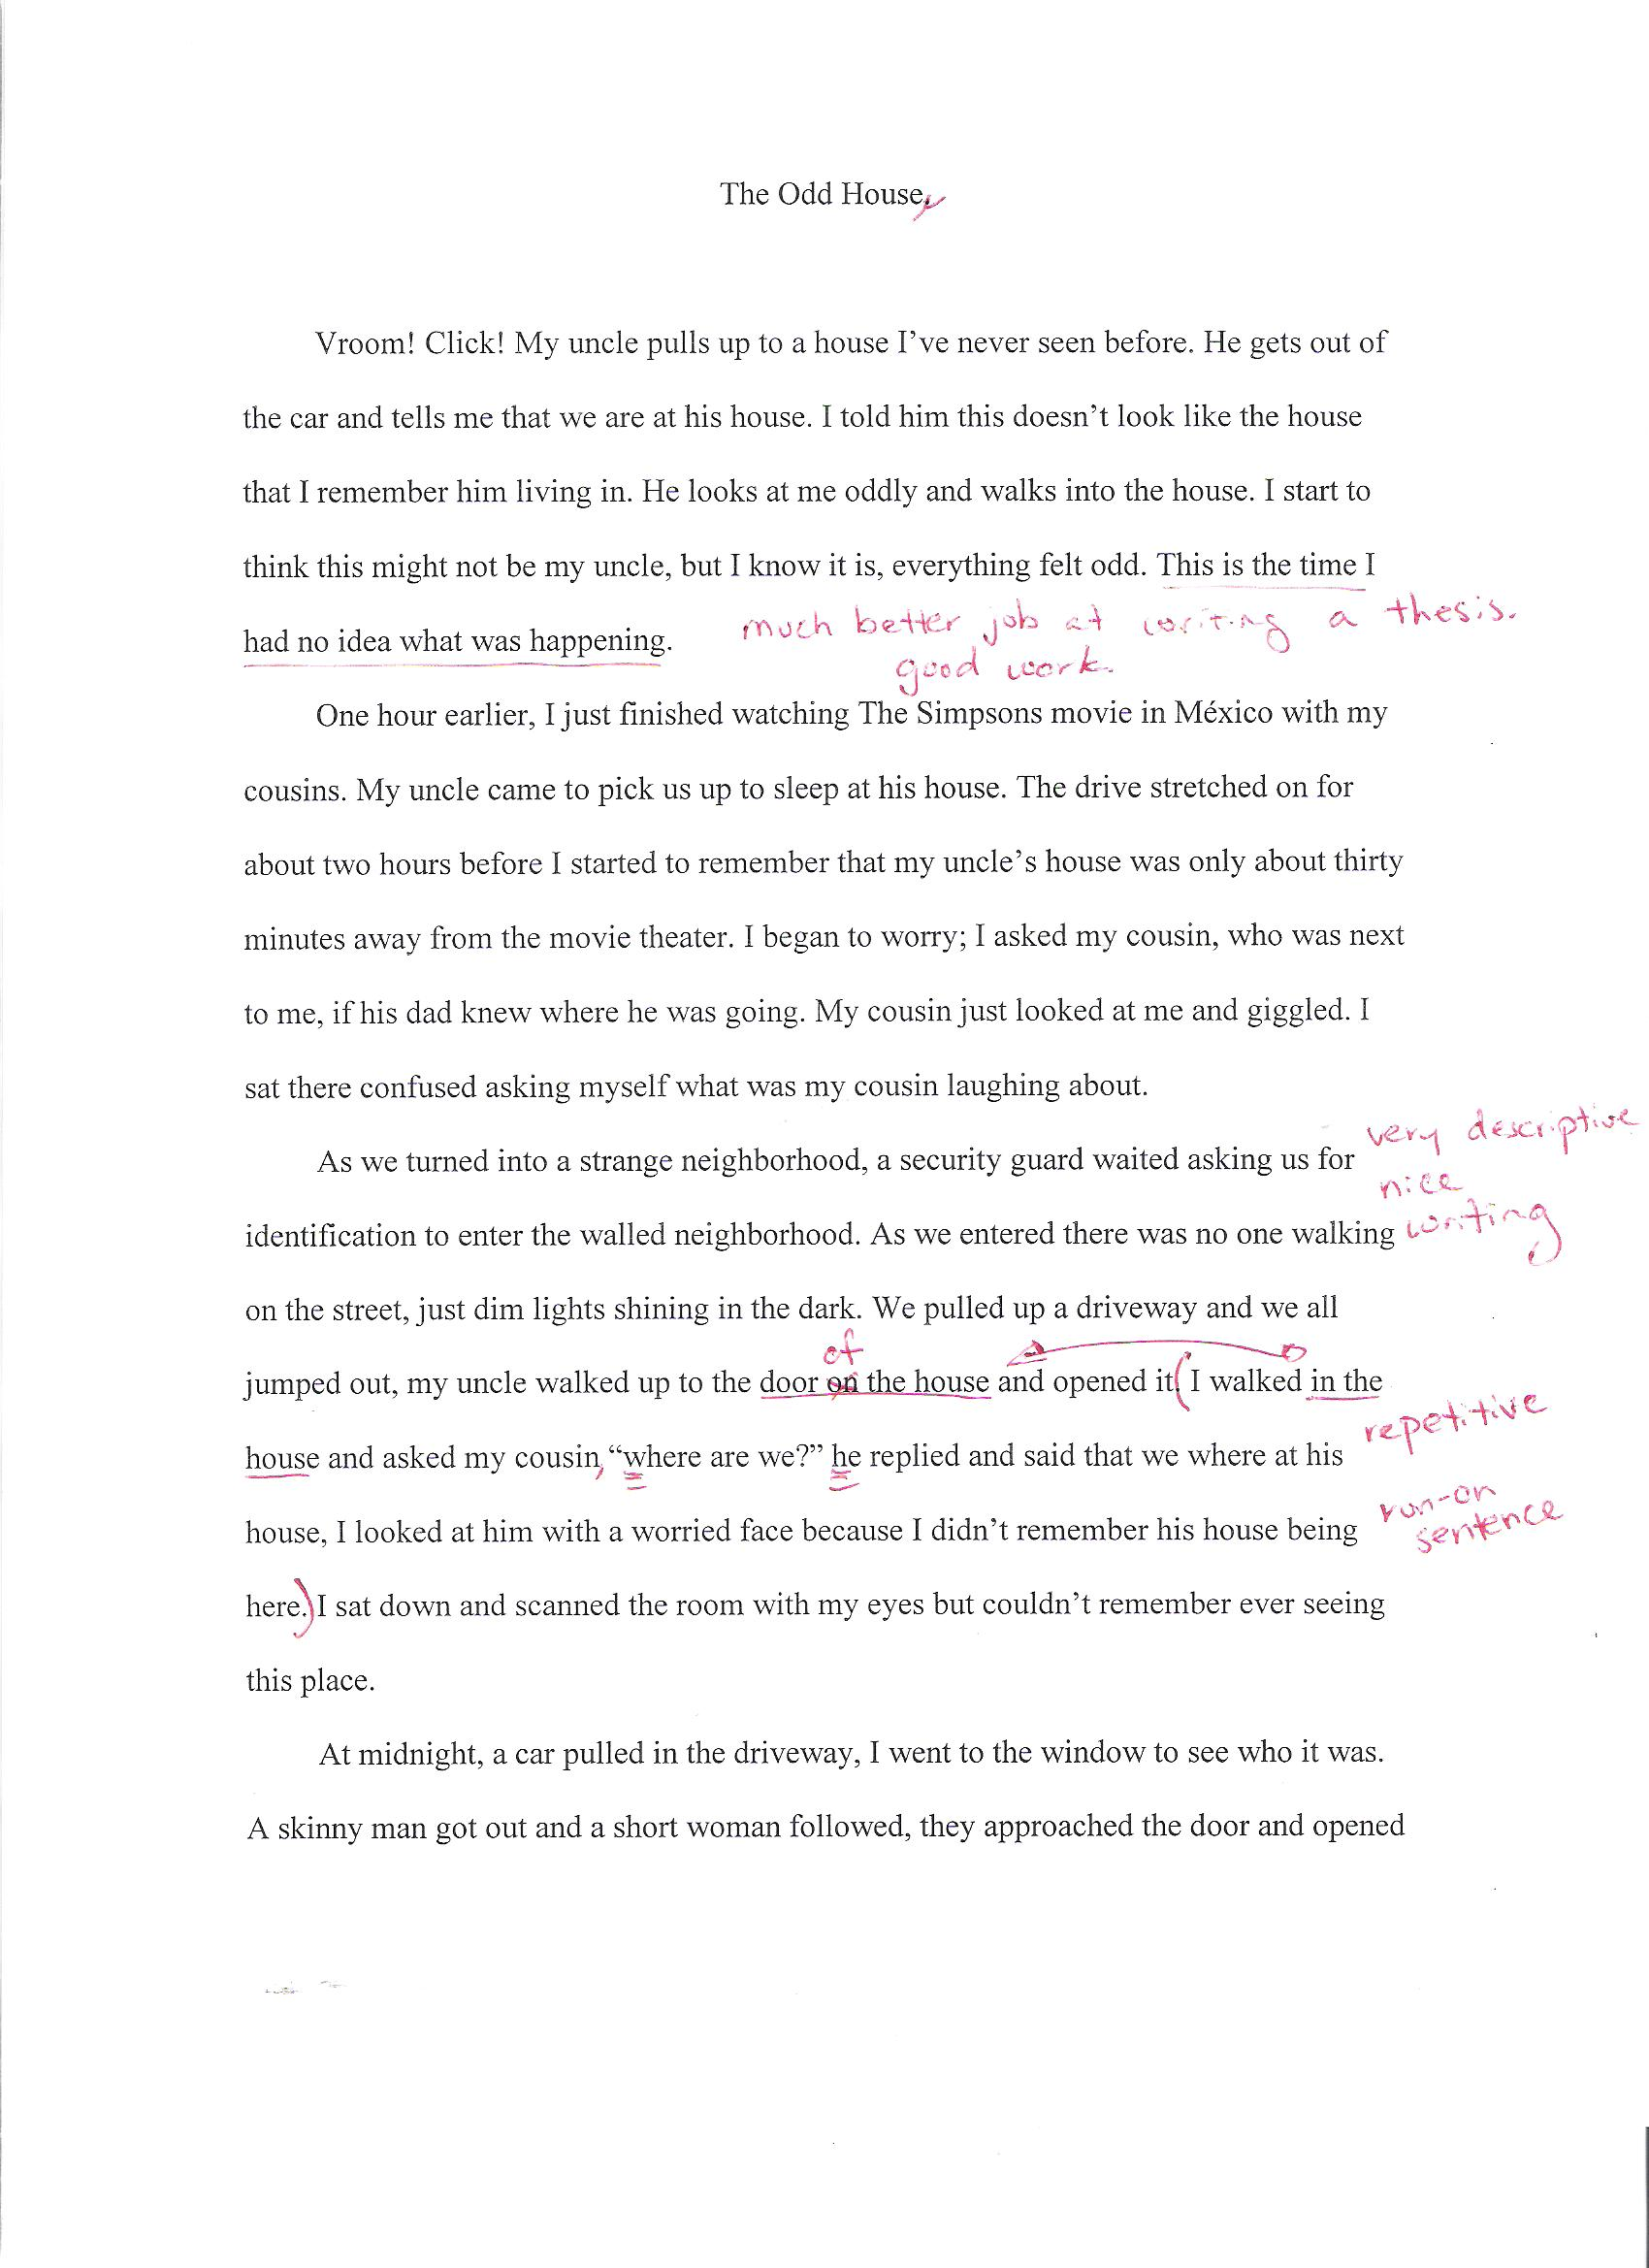 autobiographical event essay Free autobiographical papers, essays the key factors of an autobiographical essay include dramatic events or episodes, vivid details and narration.